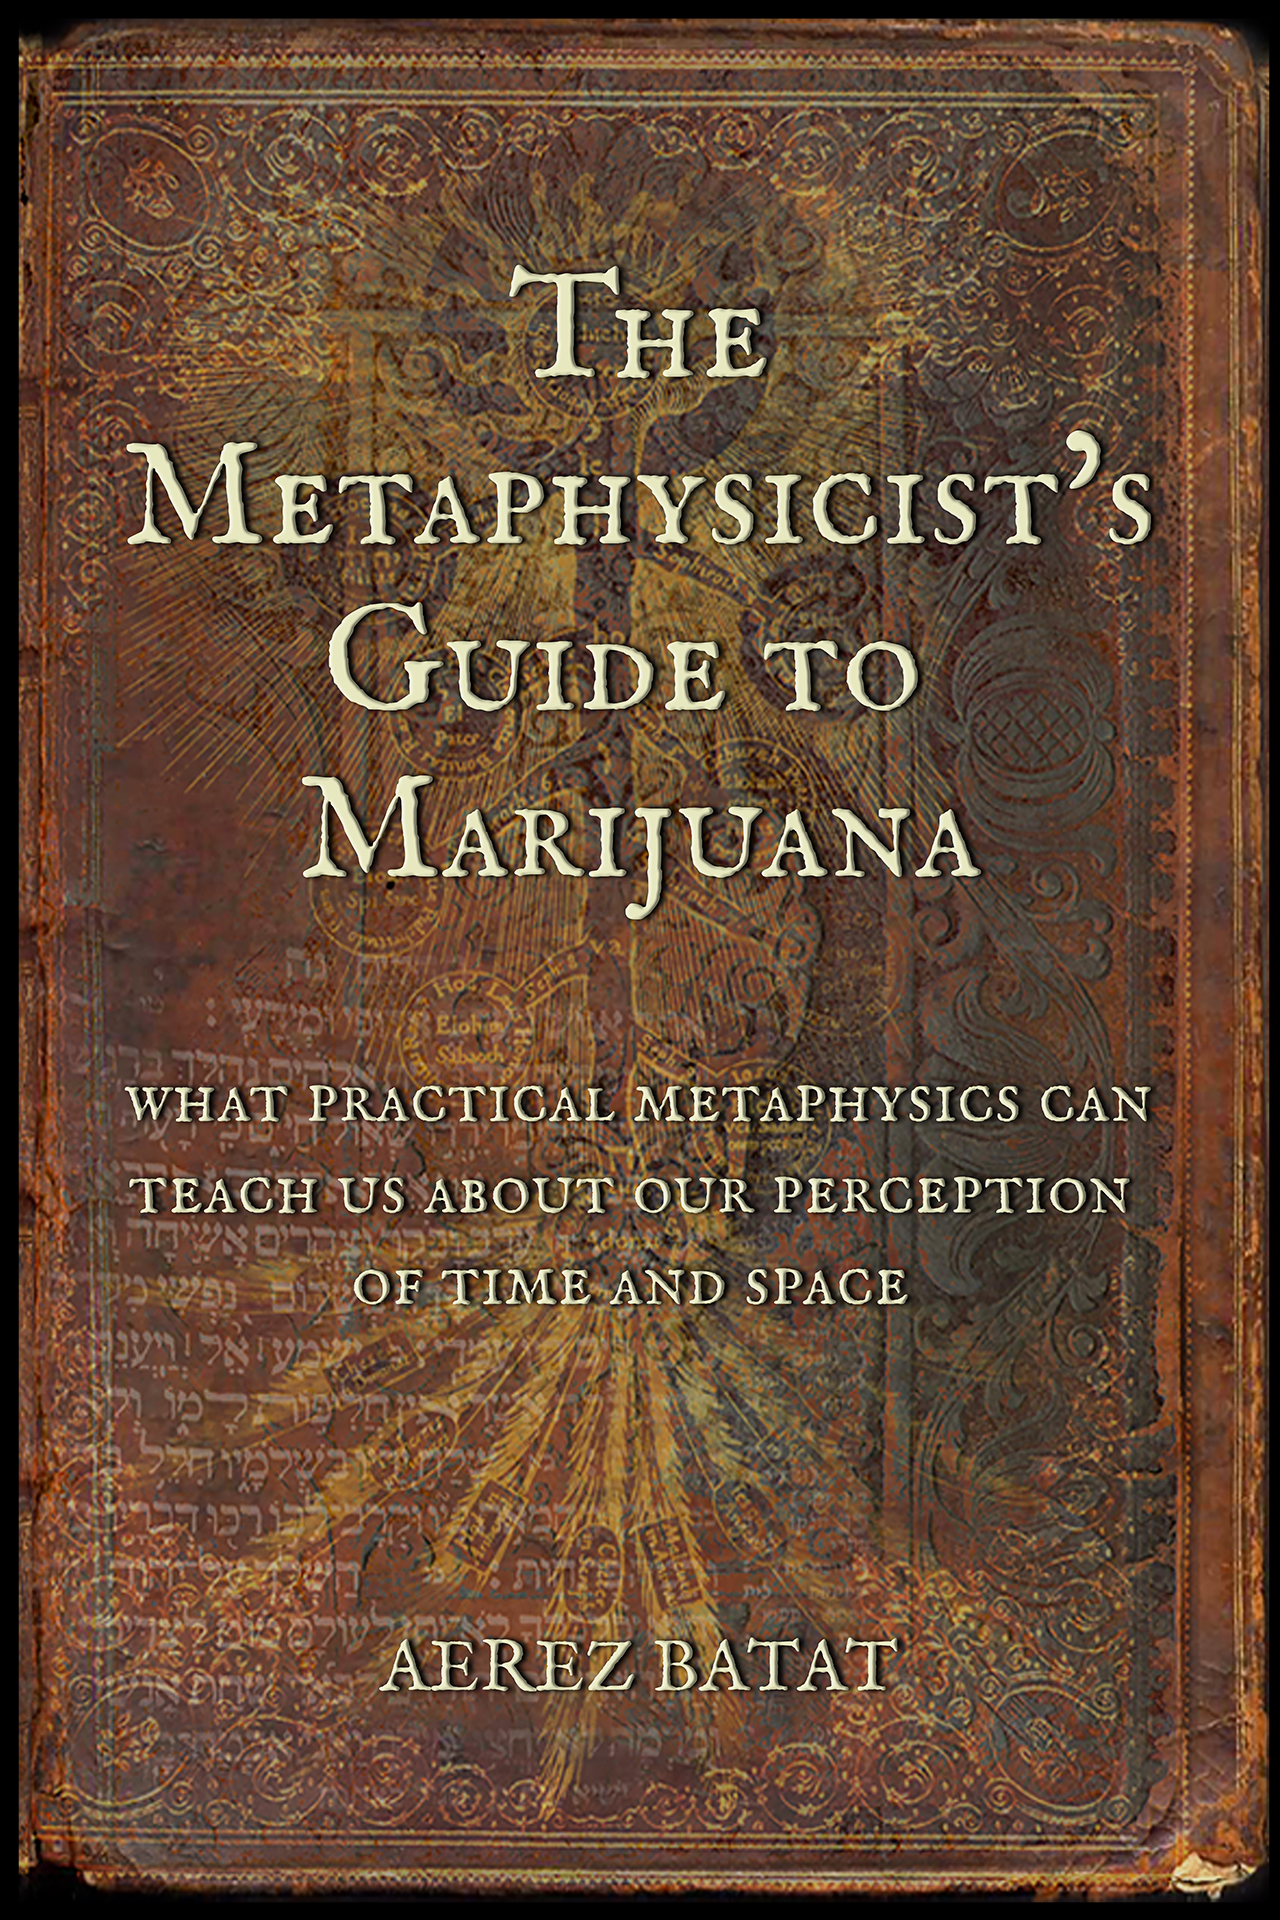 Check out The Metaphysicist's Guide to Marijuana, where I describe how the mind works by clicking the library icon in the bottom menu